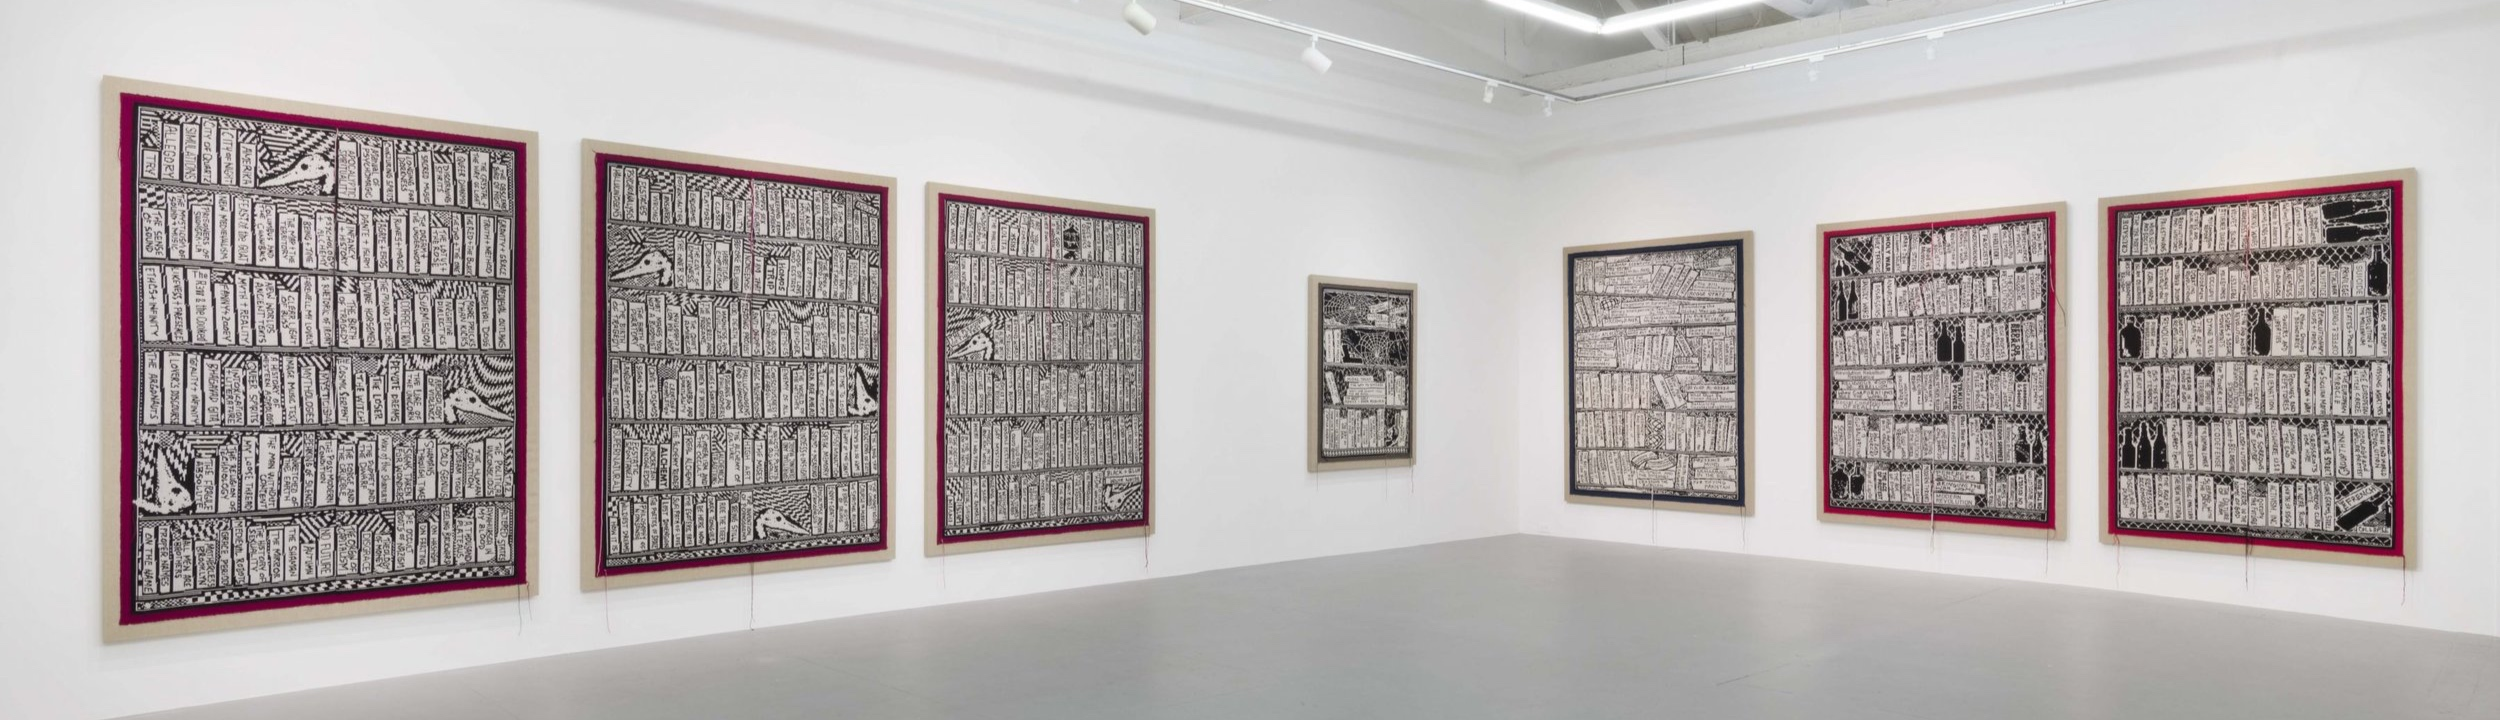 """Installation view of """"Libraries"""" at Gavlak, 2019.  More images here."""